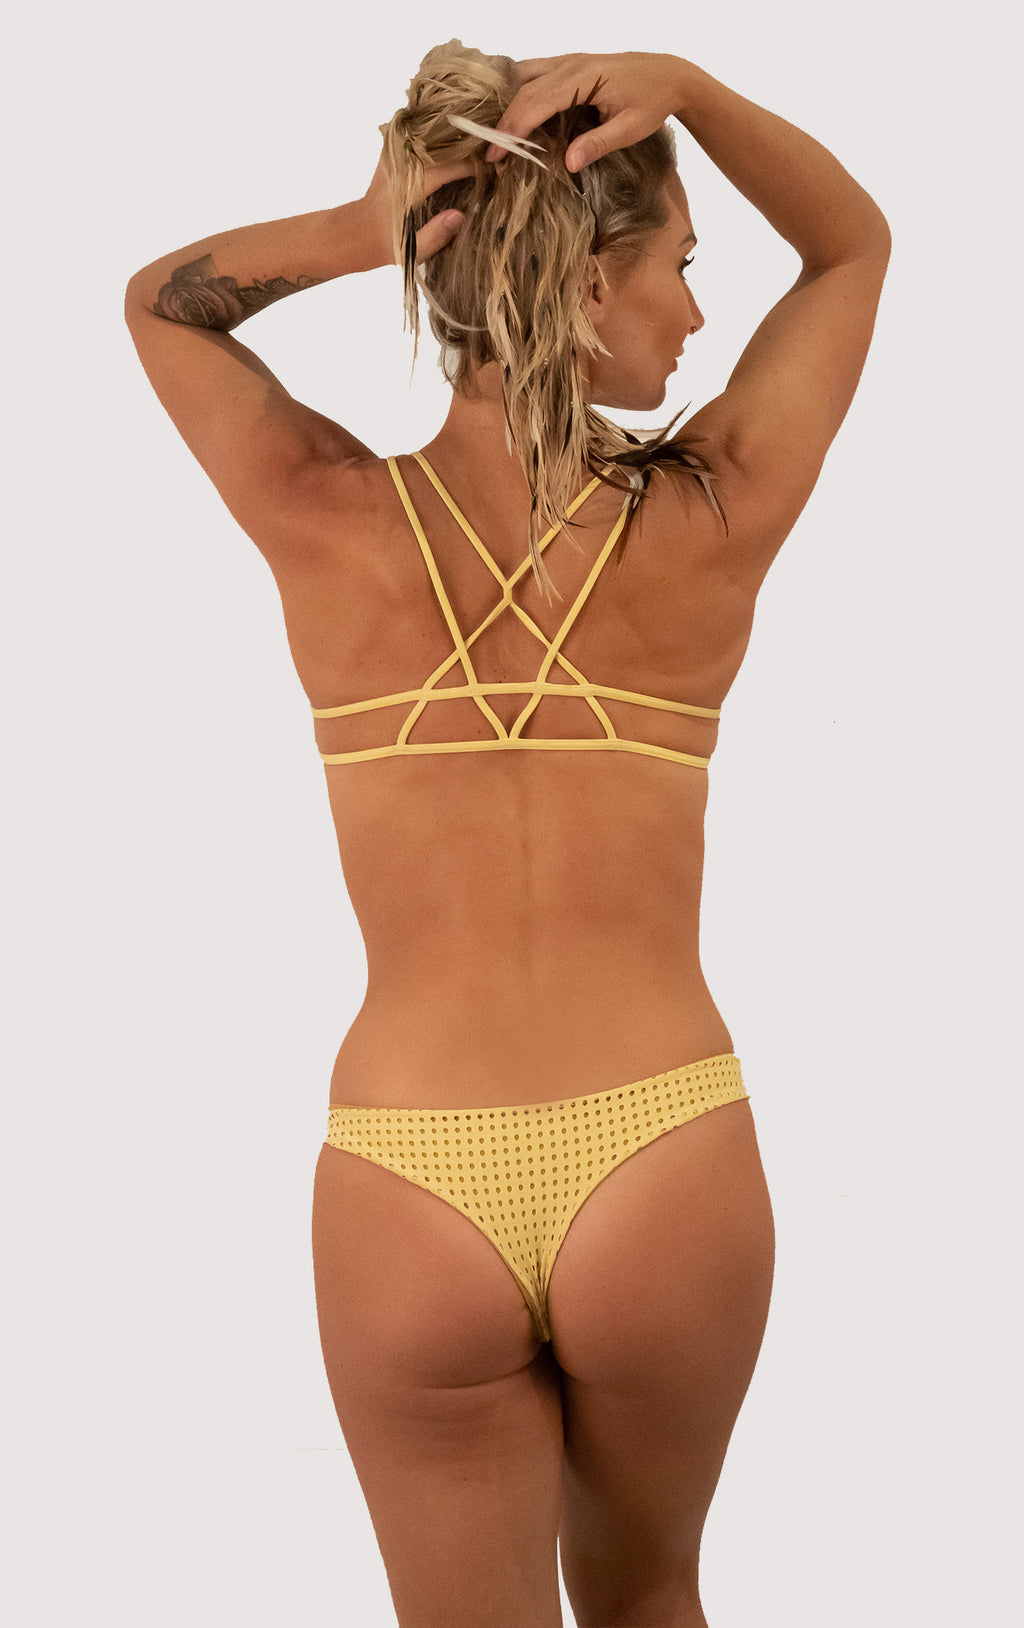 Bali Top | Color: Star Fruit mesh